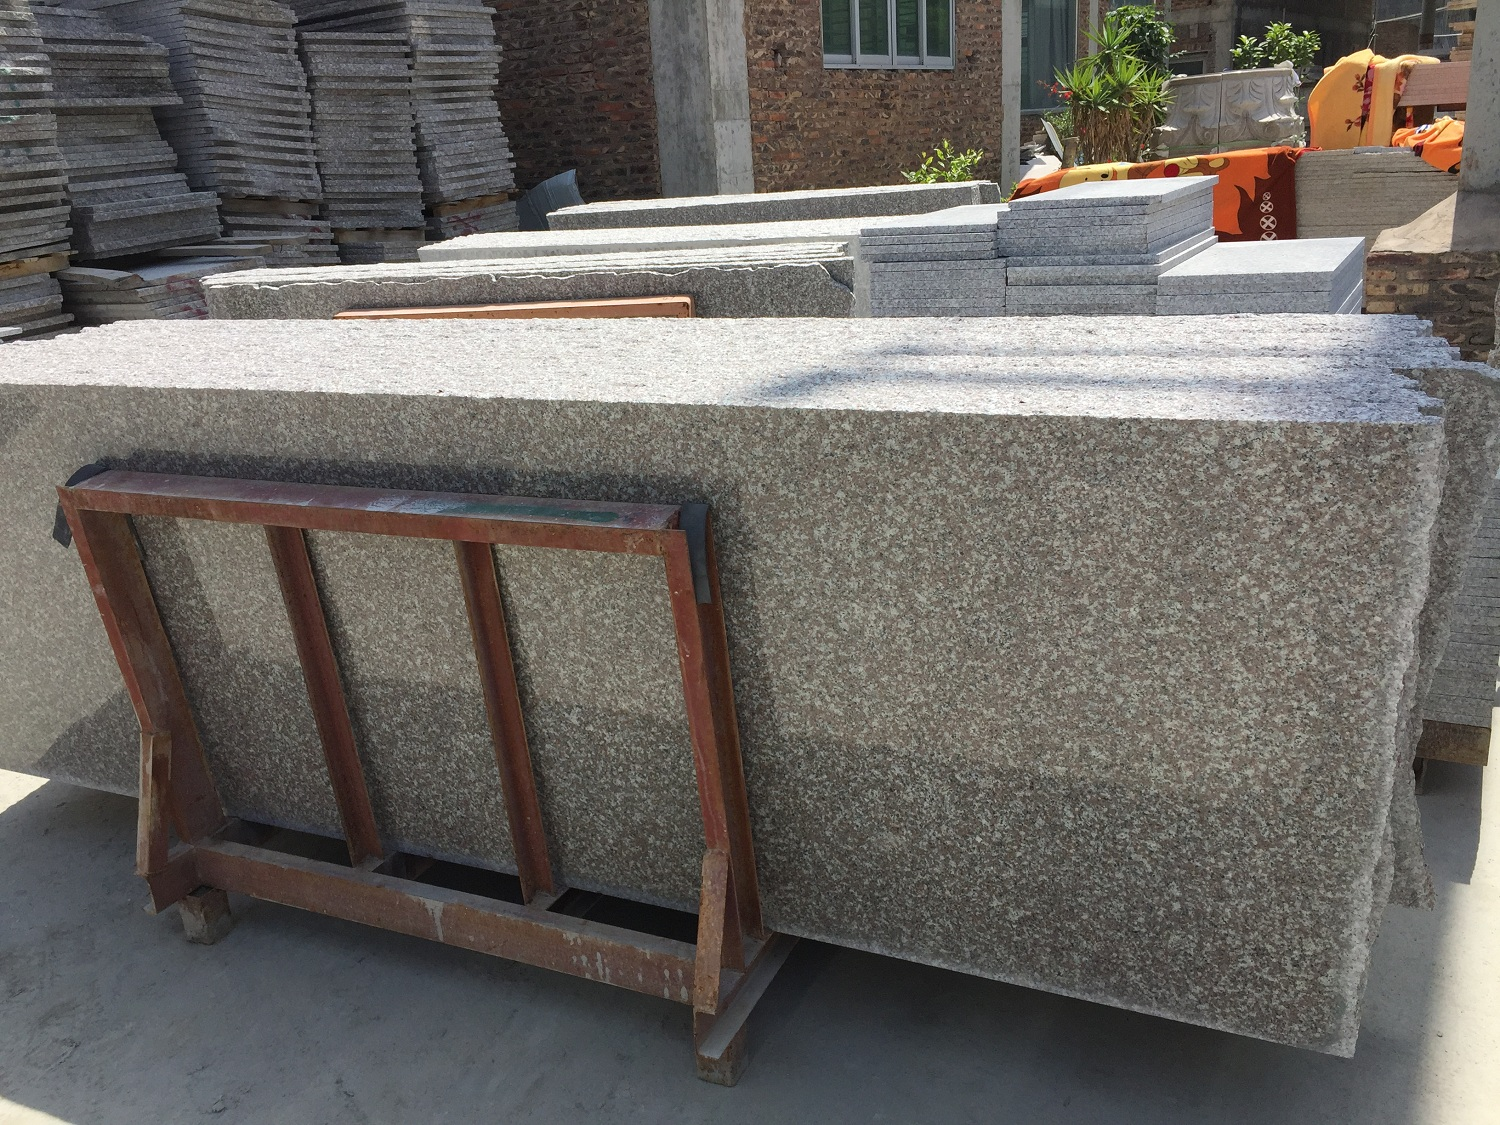 G664 Granite Small slabs promotion in July